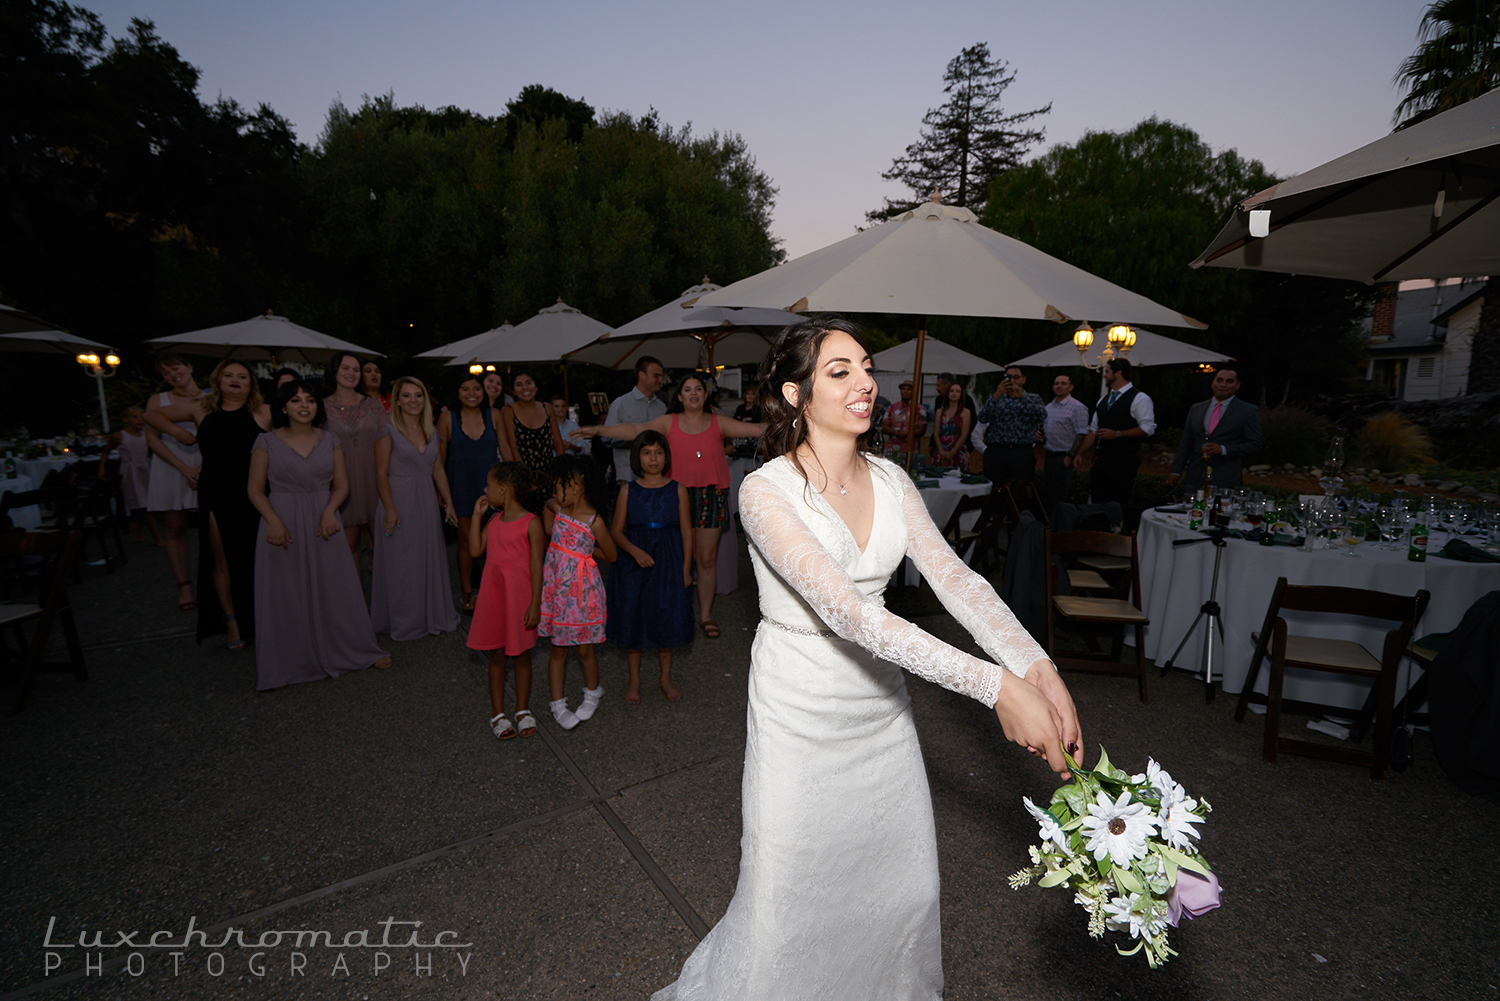 070817_Steph_Sil-San-Francisco-Bay-Area-Carmel-Valley-Monterey-Bay-California-Wedding-Los-Laureles-Lodge-Bride-Gown-Dress-Groom-Engaged-Knot-Bridesmaids-Luxchromatic-Portrait-Sony-Alpha-a7Rii-Interfit-Profoto-Best-Photographer-Photography-1079 copy.jpg